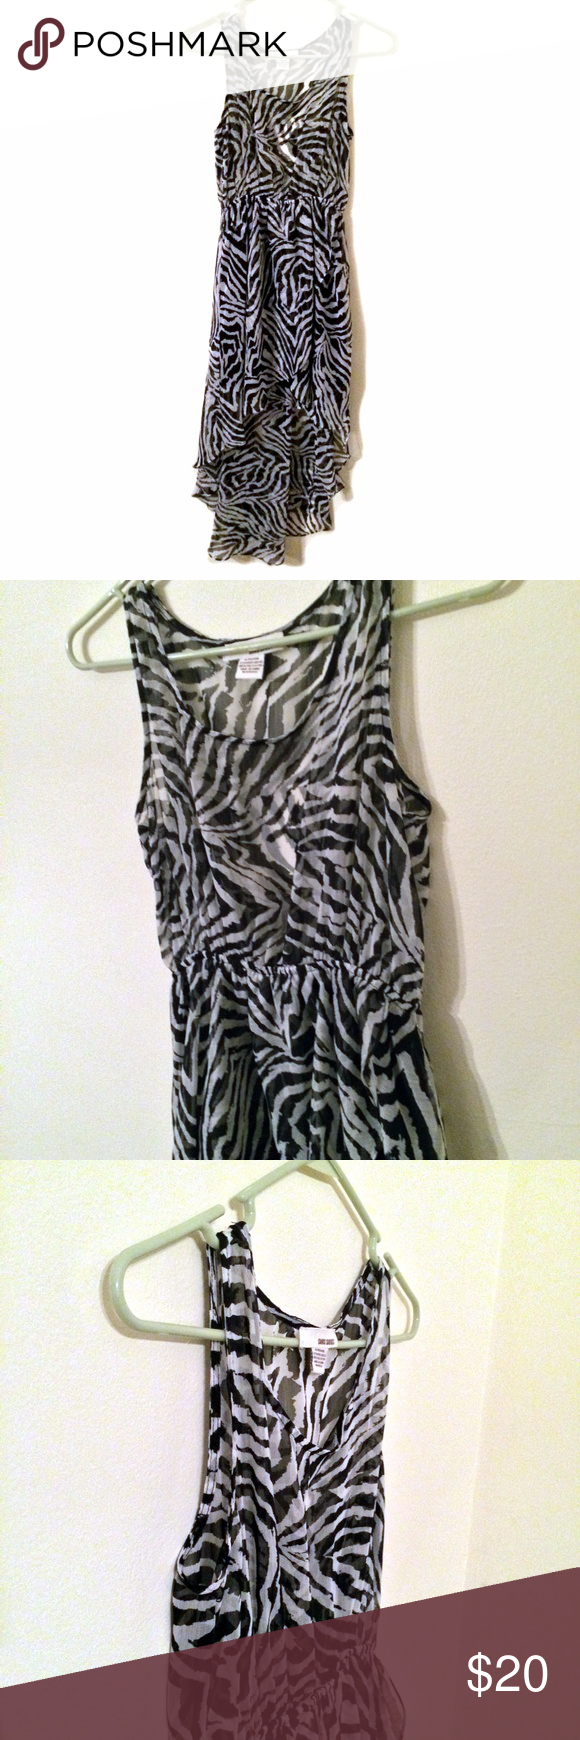 Sans souci high low zebra print dress zebra print high low and